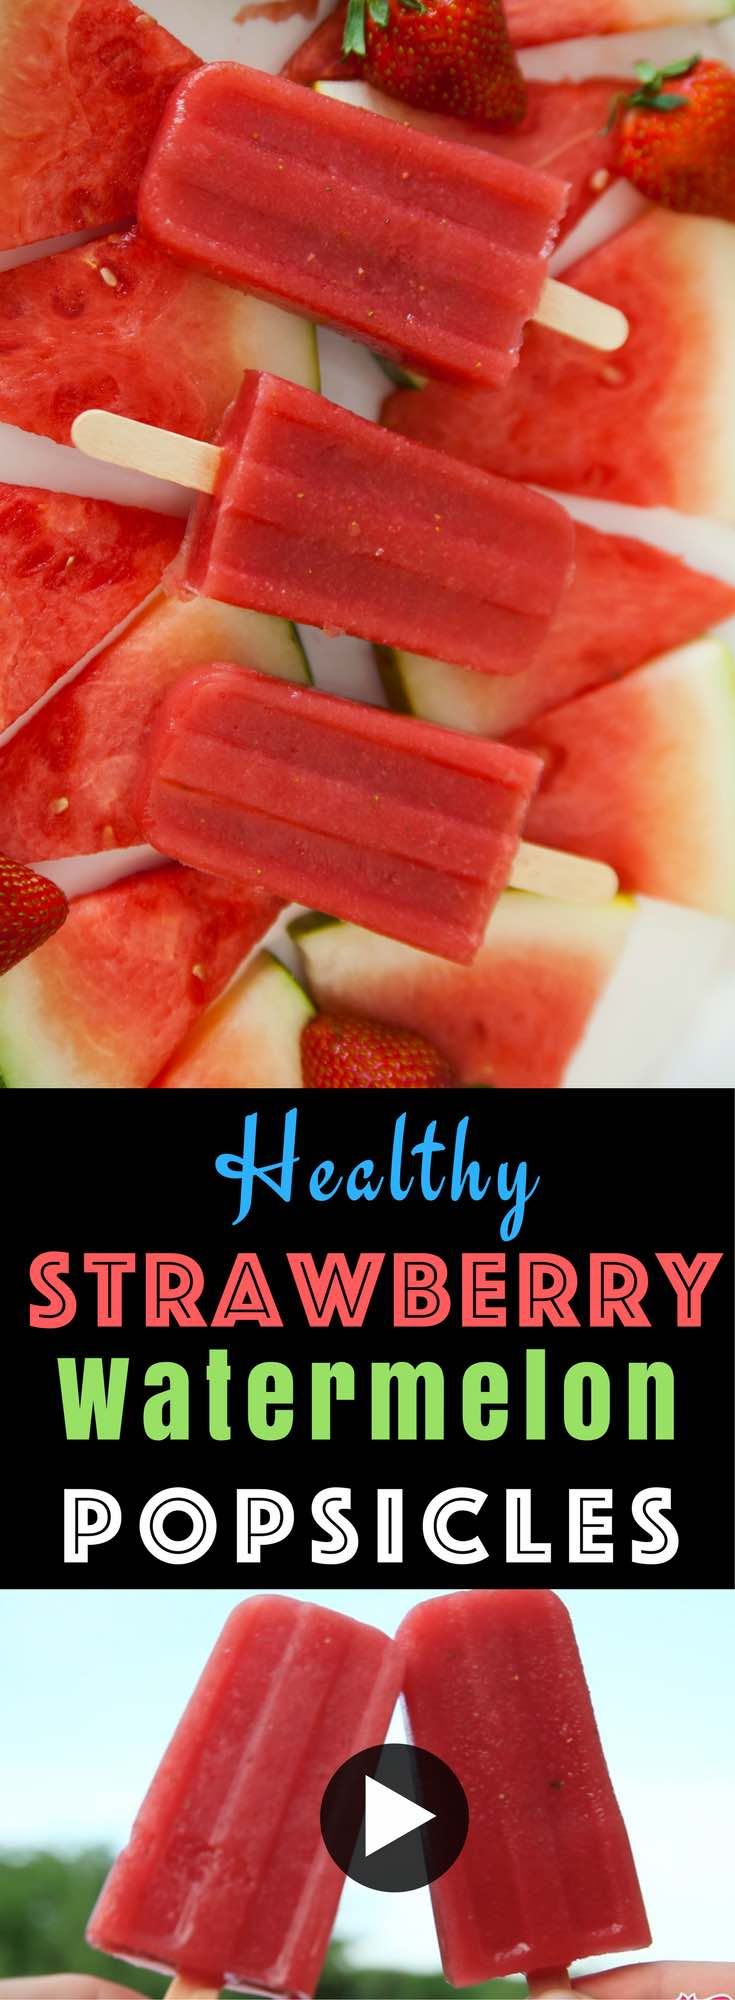 Healthy Strawberry Watermelon Popsicles – So easy to make and perfect for a summertime treat! All you need is only 3 simple ingredients: watermelon, strawberries and lime! Kids friendly, quick and easy recipe, no bake recipe, vegan recipe. Video recipe. | Tipbuzz.com